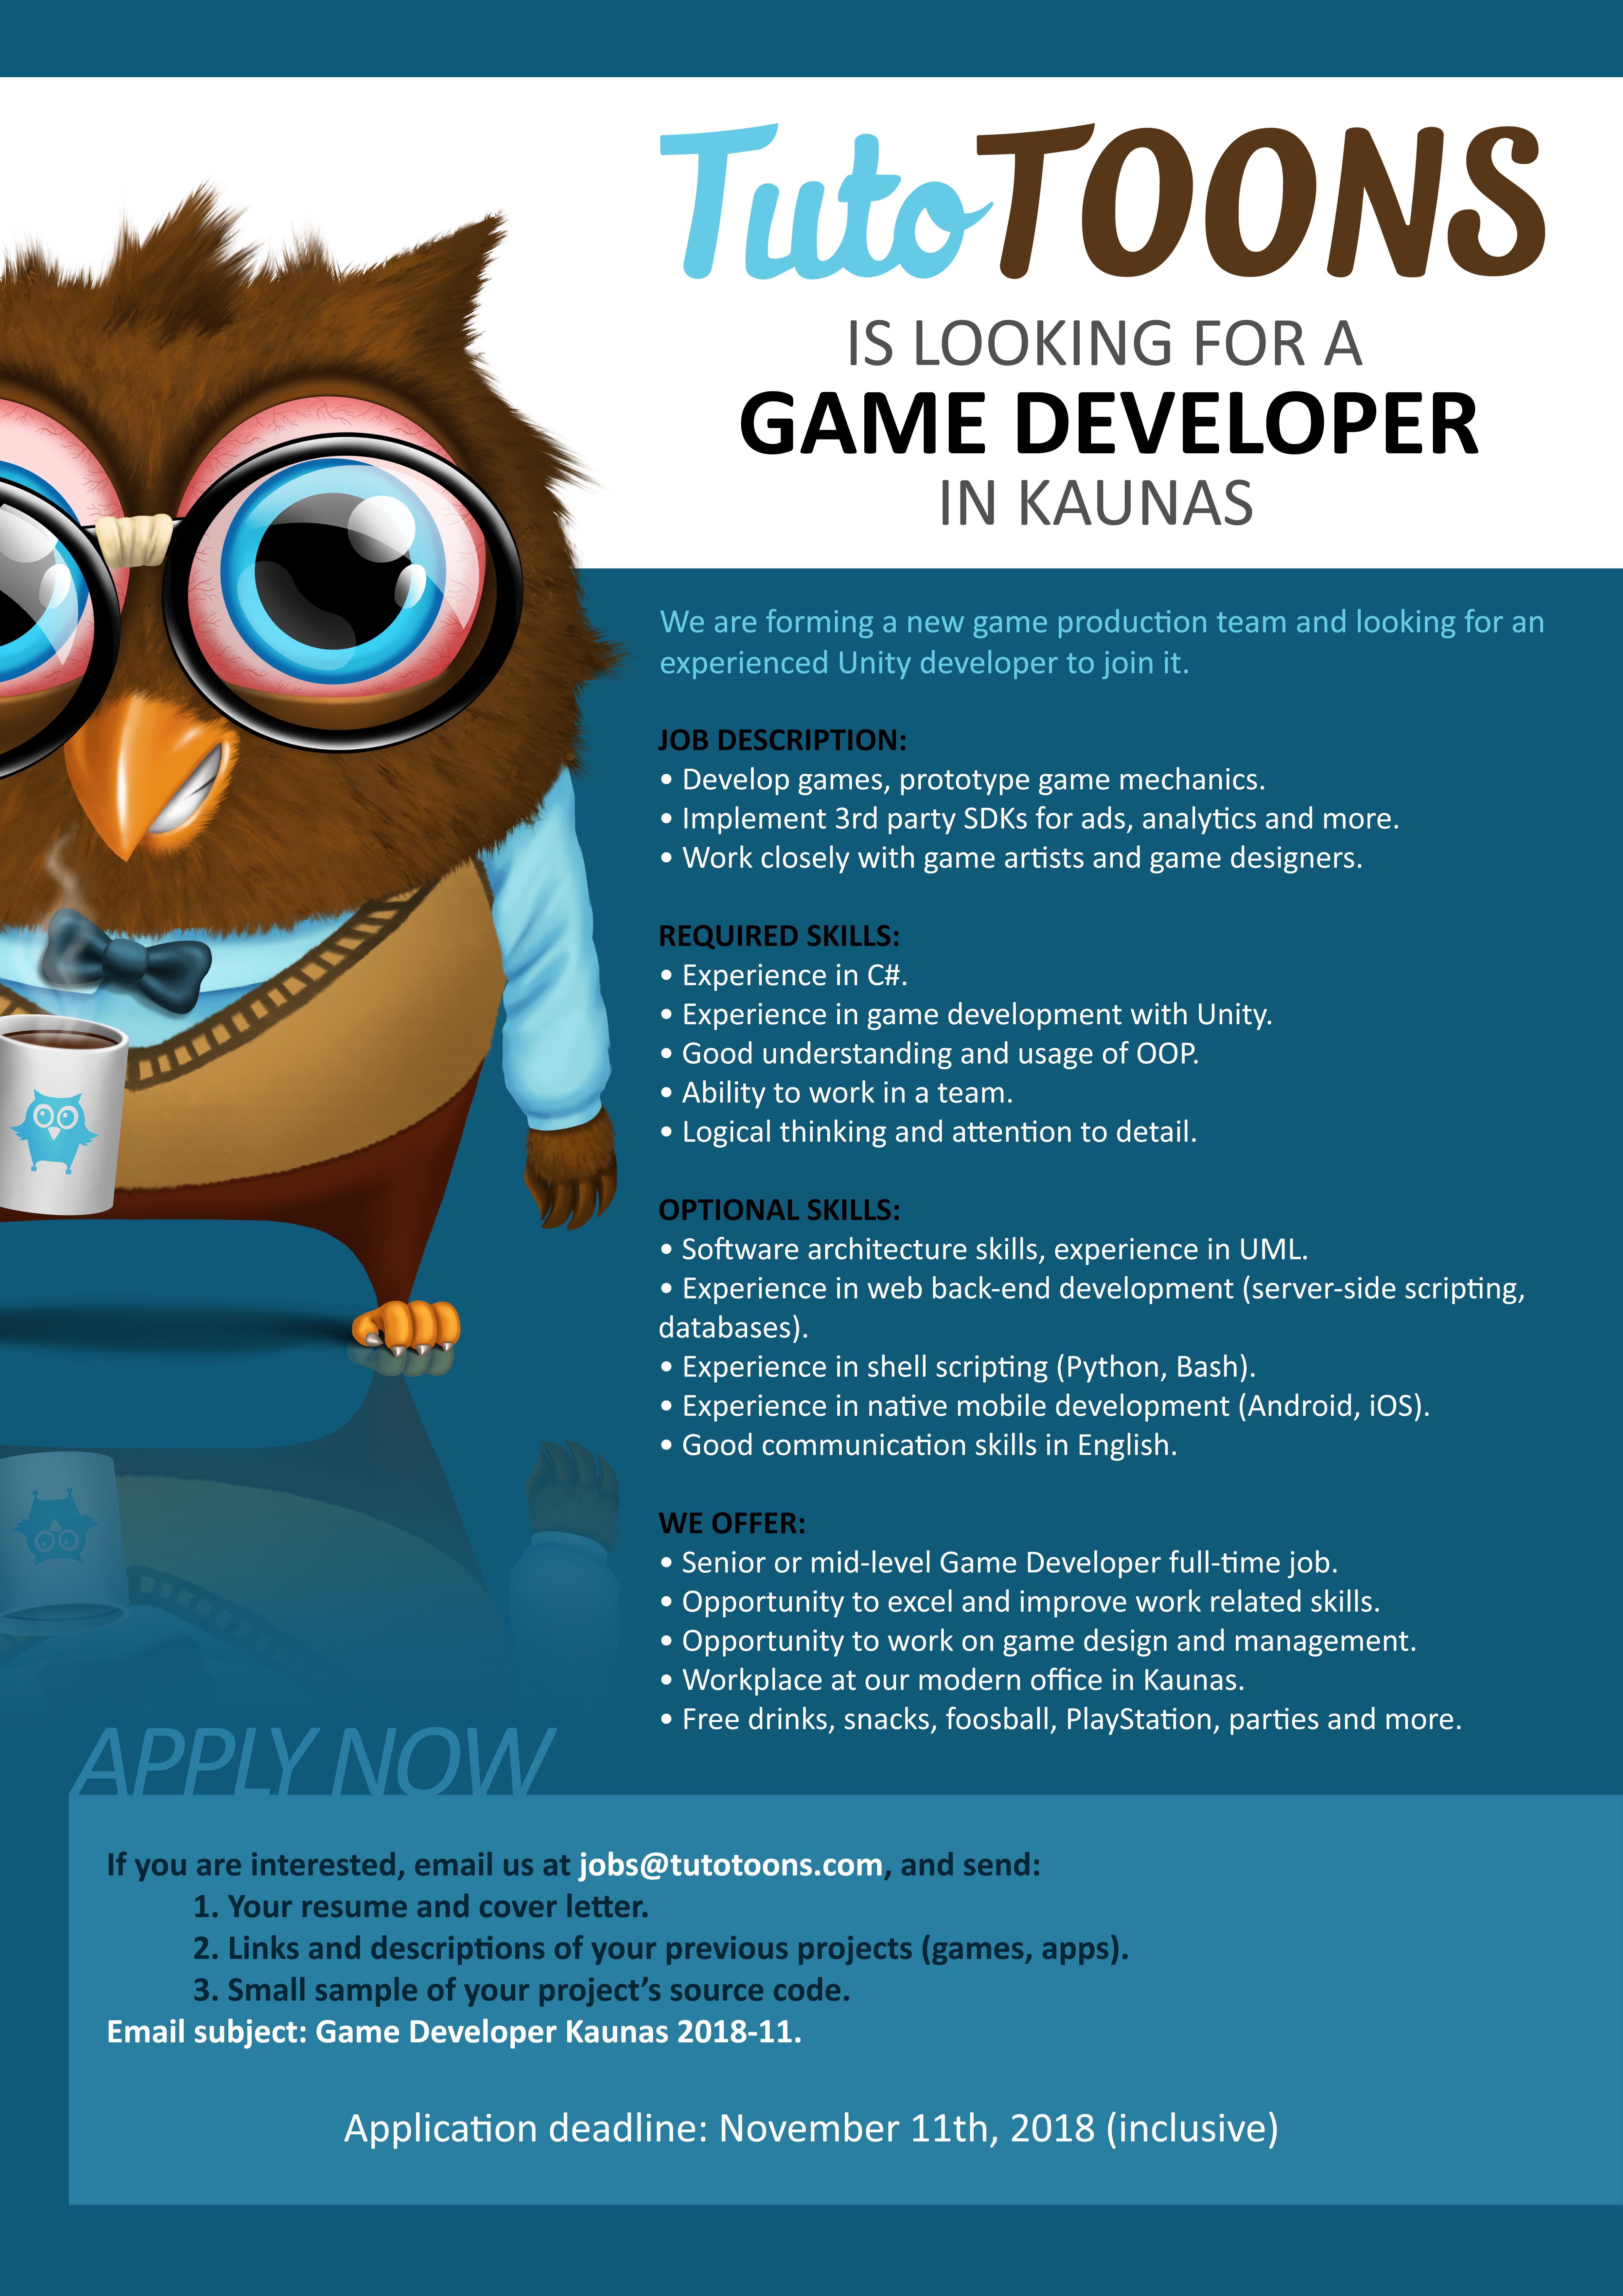 CLOSED] TutoTOONS Is Looking for a Game Developer! | TutoTOONS Blog